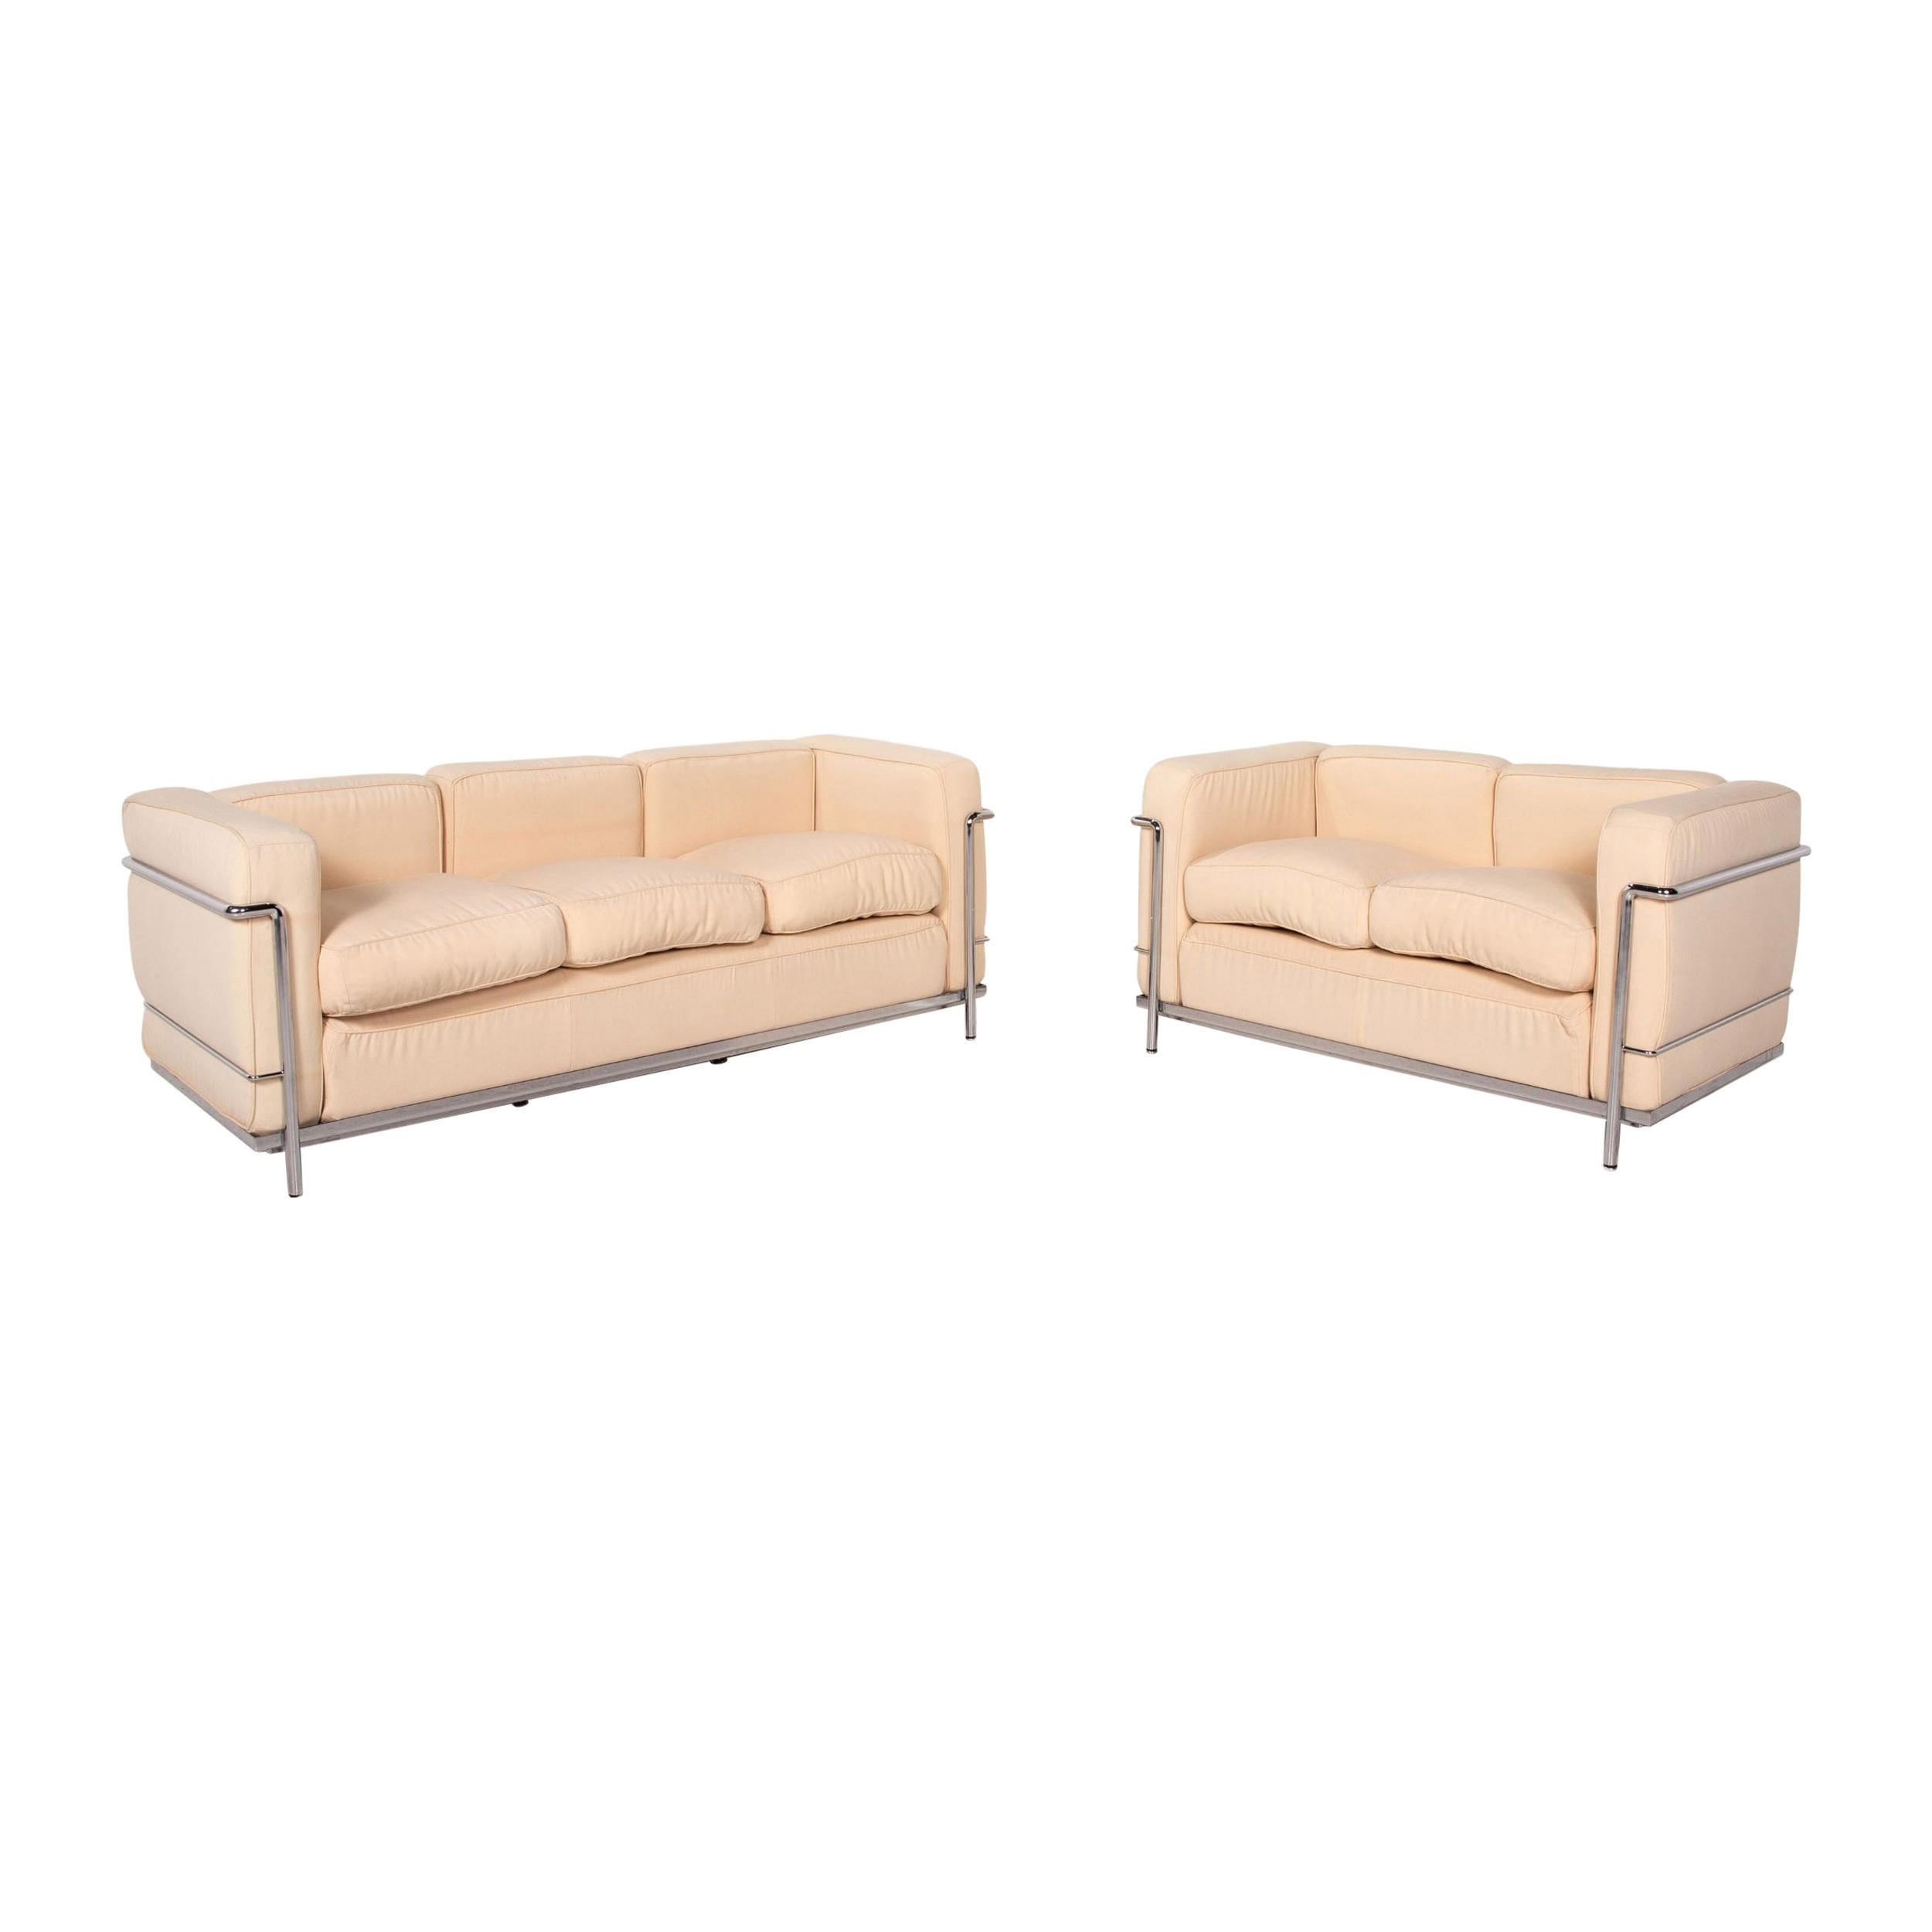 Cassina LC 4 Le Corbusier Fabric Sofa Set Beige 1x Three-Seater 1x Two-Seater